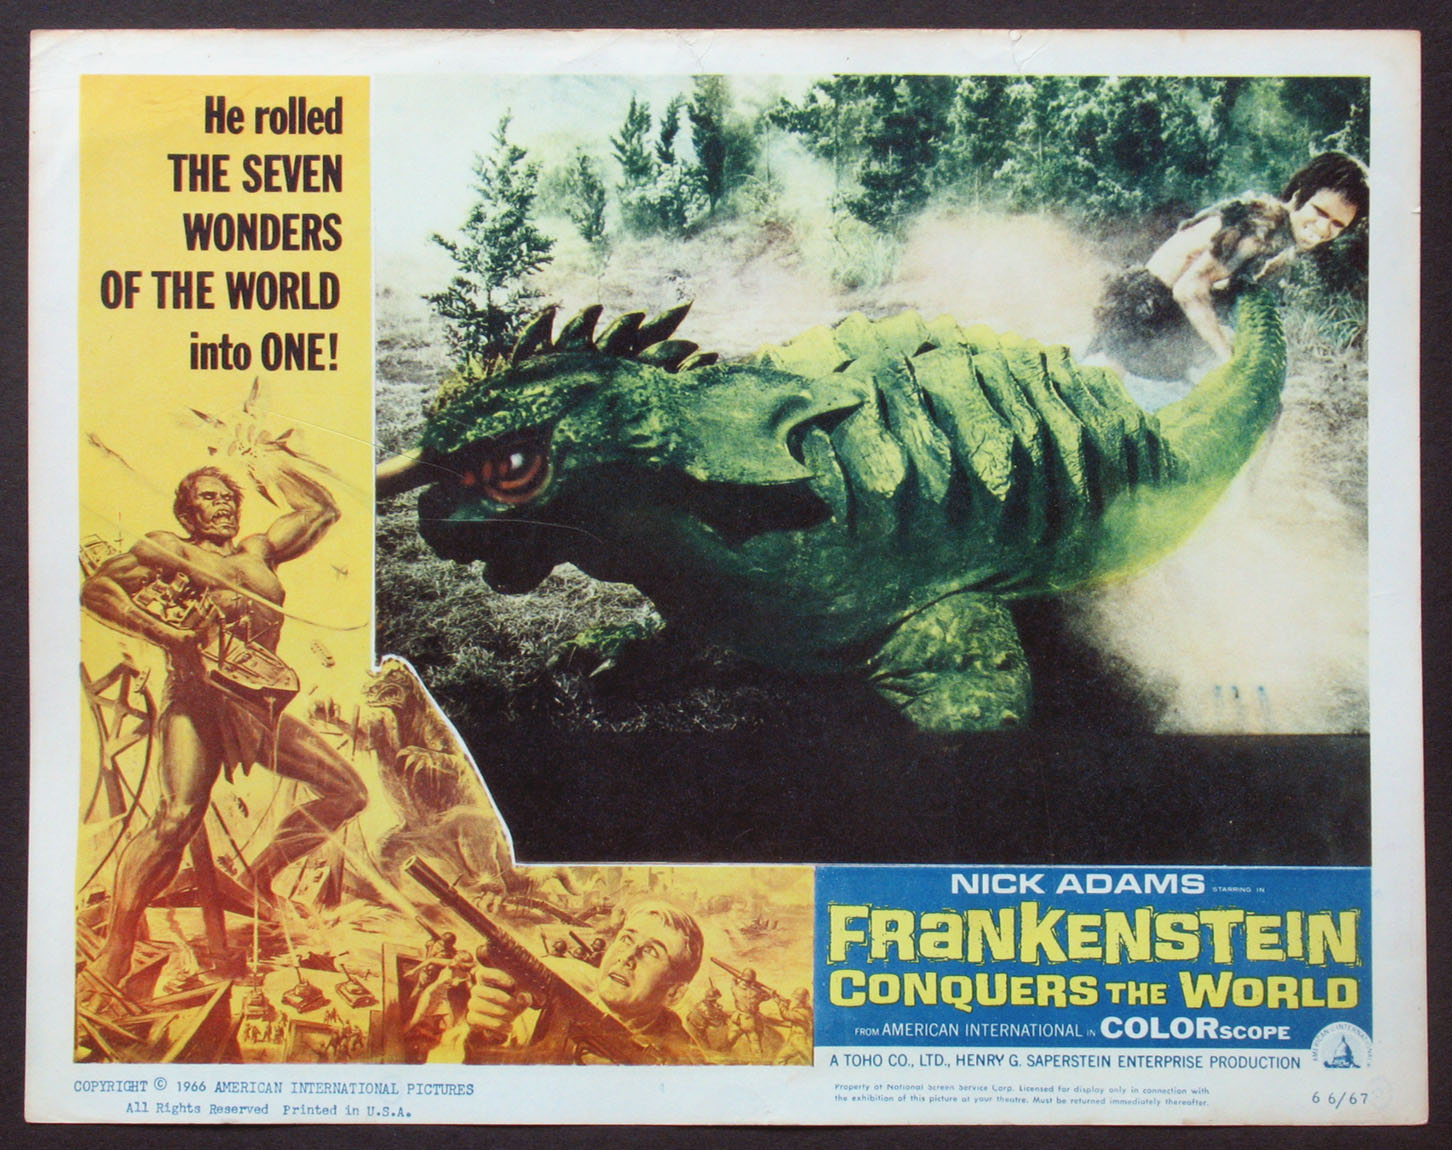 FRANKENSTEIN CONQUERS THE WORLD @ FilmPosters.com